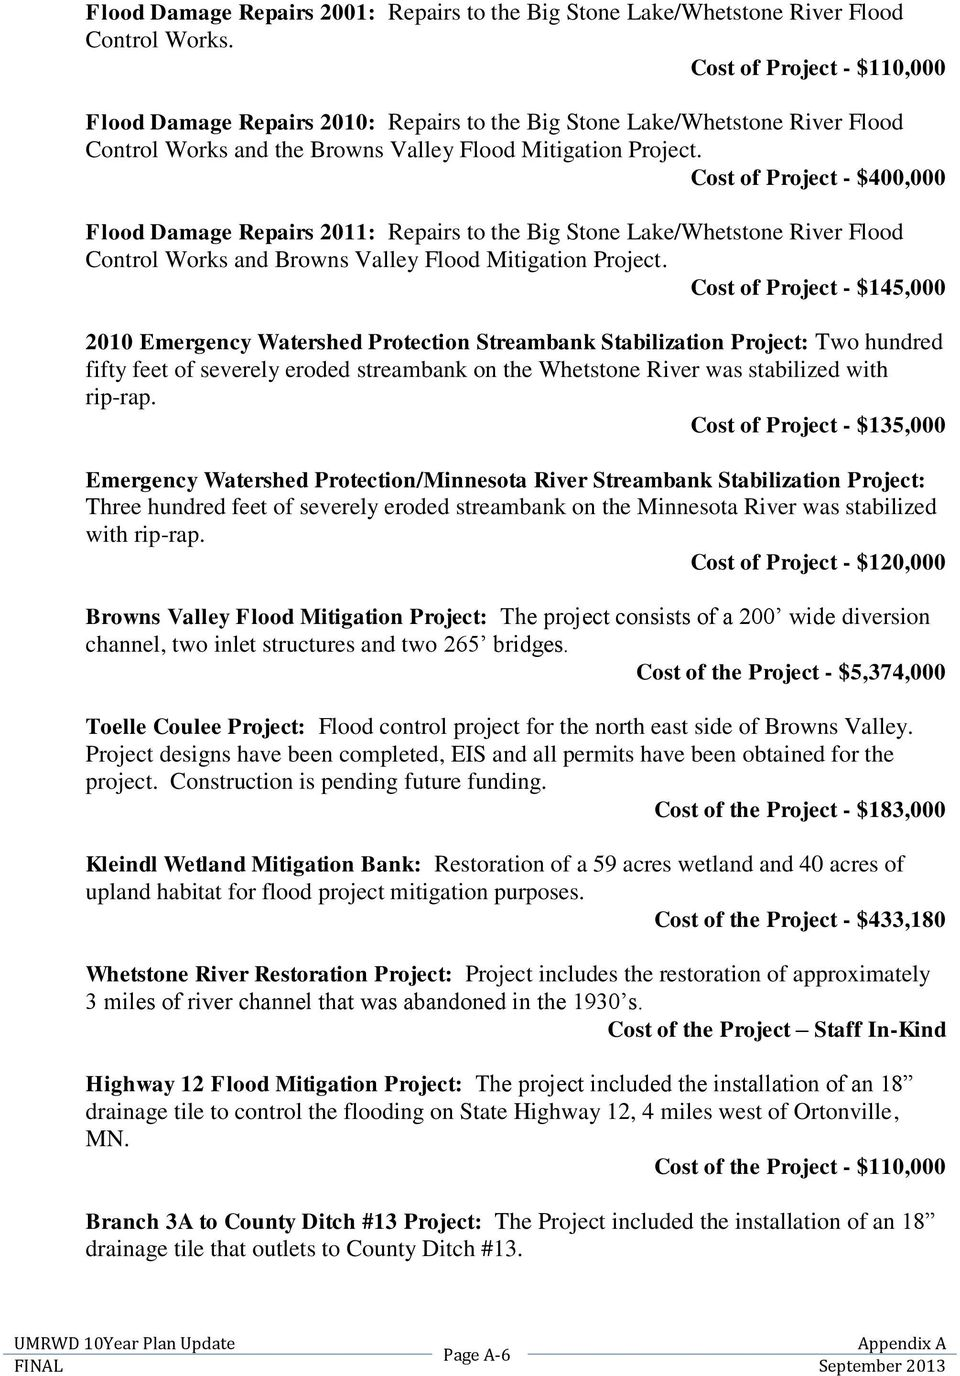 Cost of Project - $400,000 Flood Damage Repairs 2011: Repairs to the Big Stone Lake/Whetstone River Flood Control Works and Browns Valley Flood Mitigation Project.